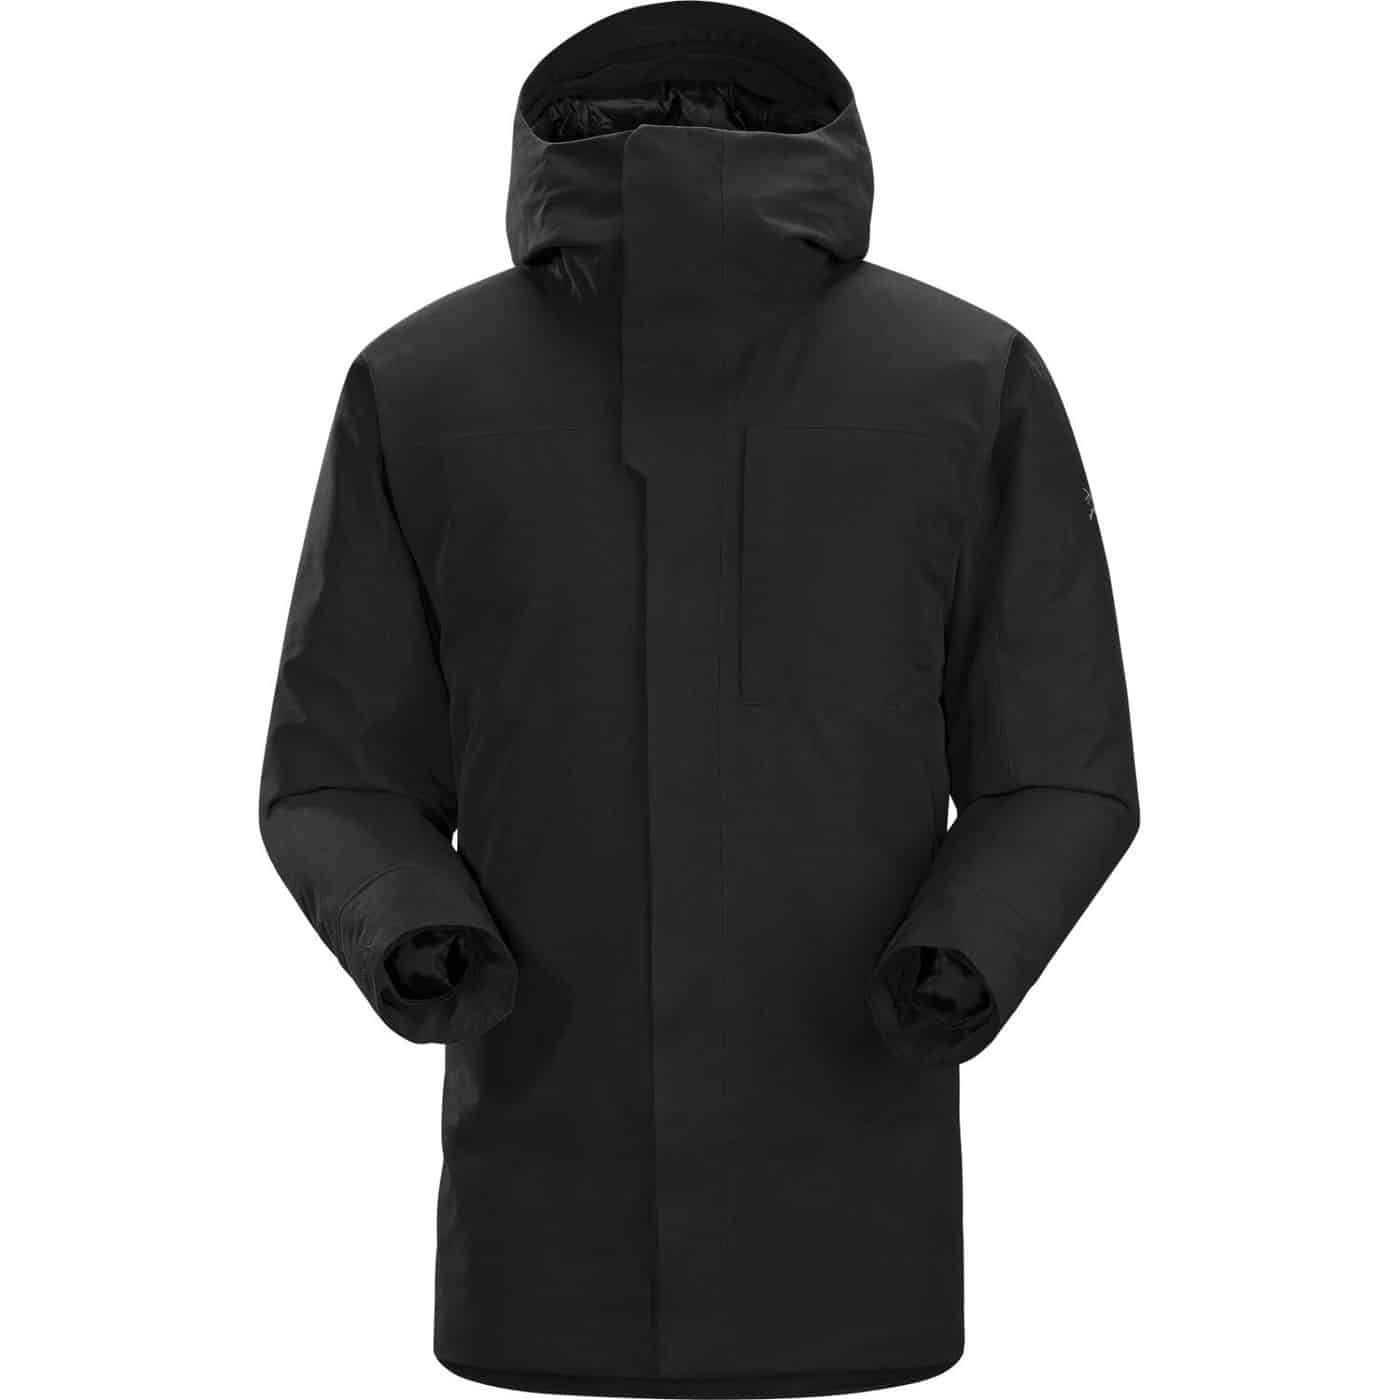 The Therme Parka from Arc'teryx: Top 5 winter jackets